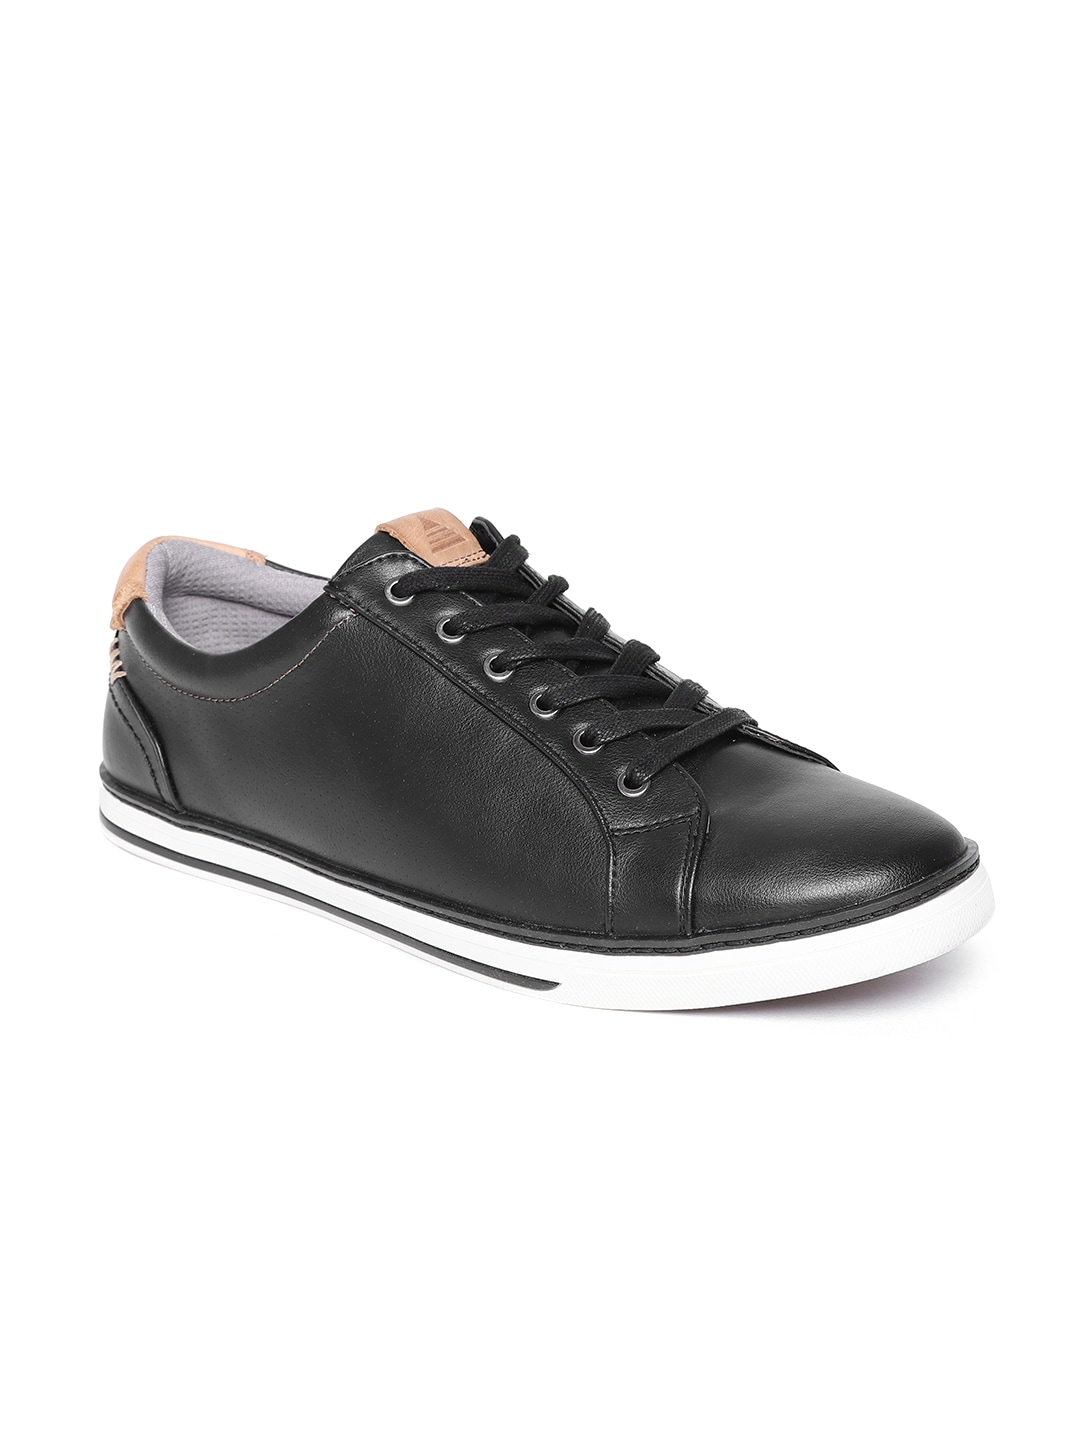 Aldo in Aldo Men For Men Shoes Shoes For online India Buy f6gYby7v